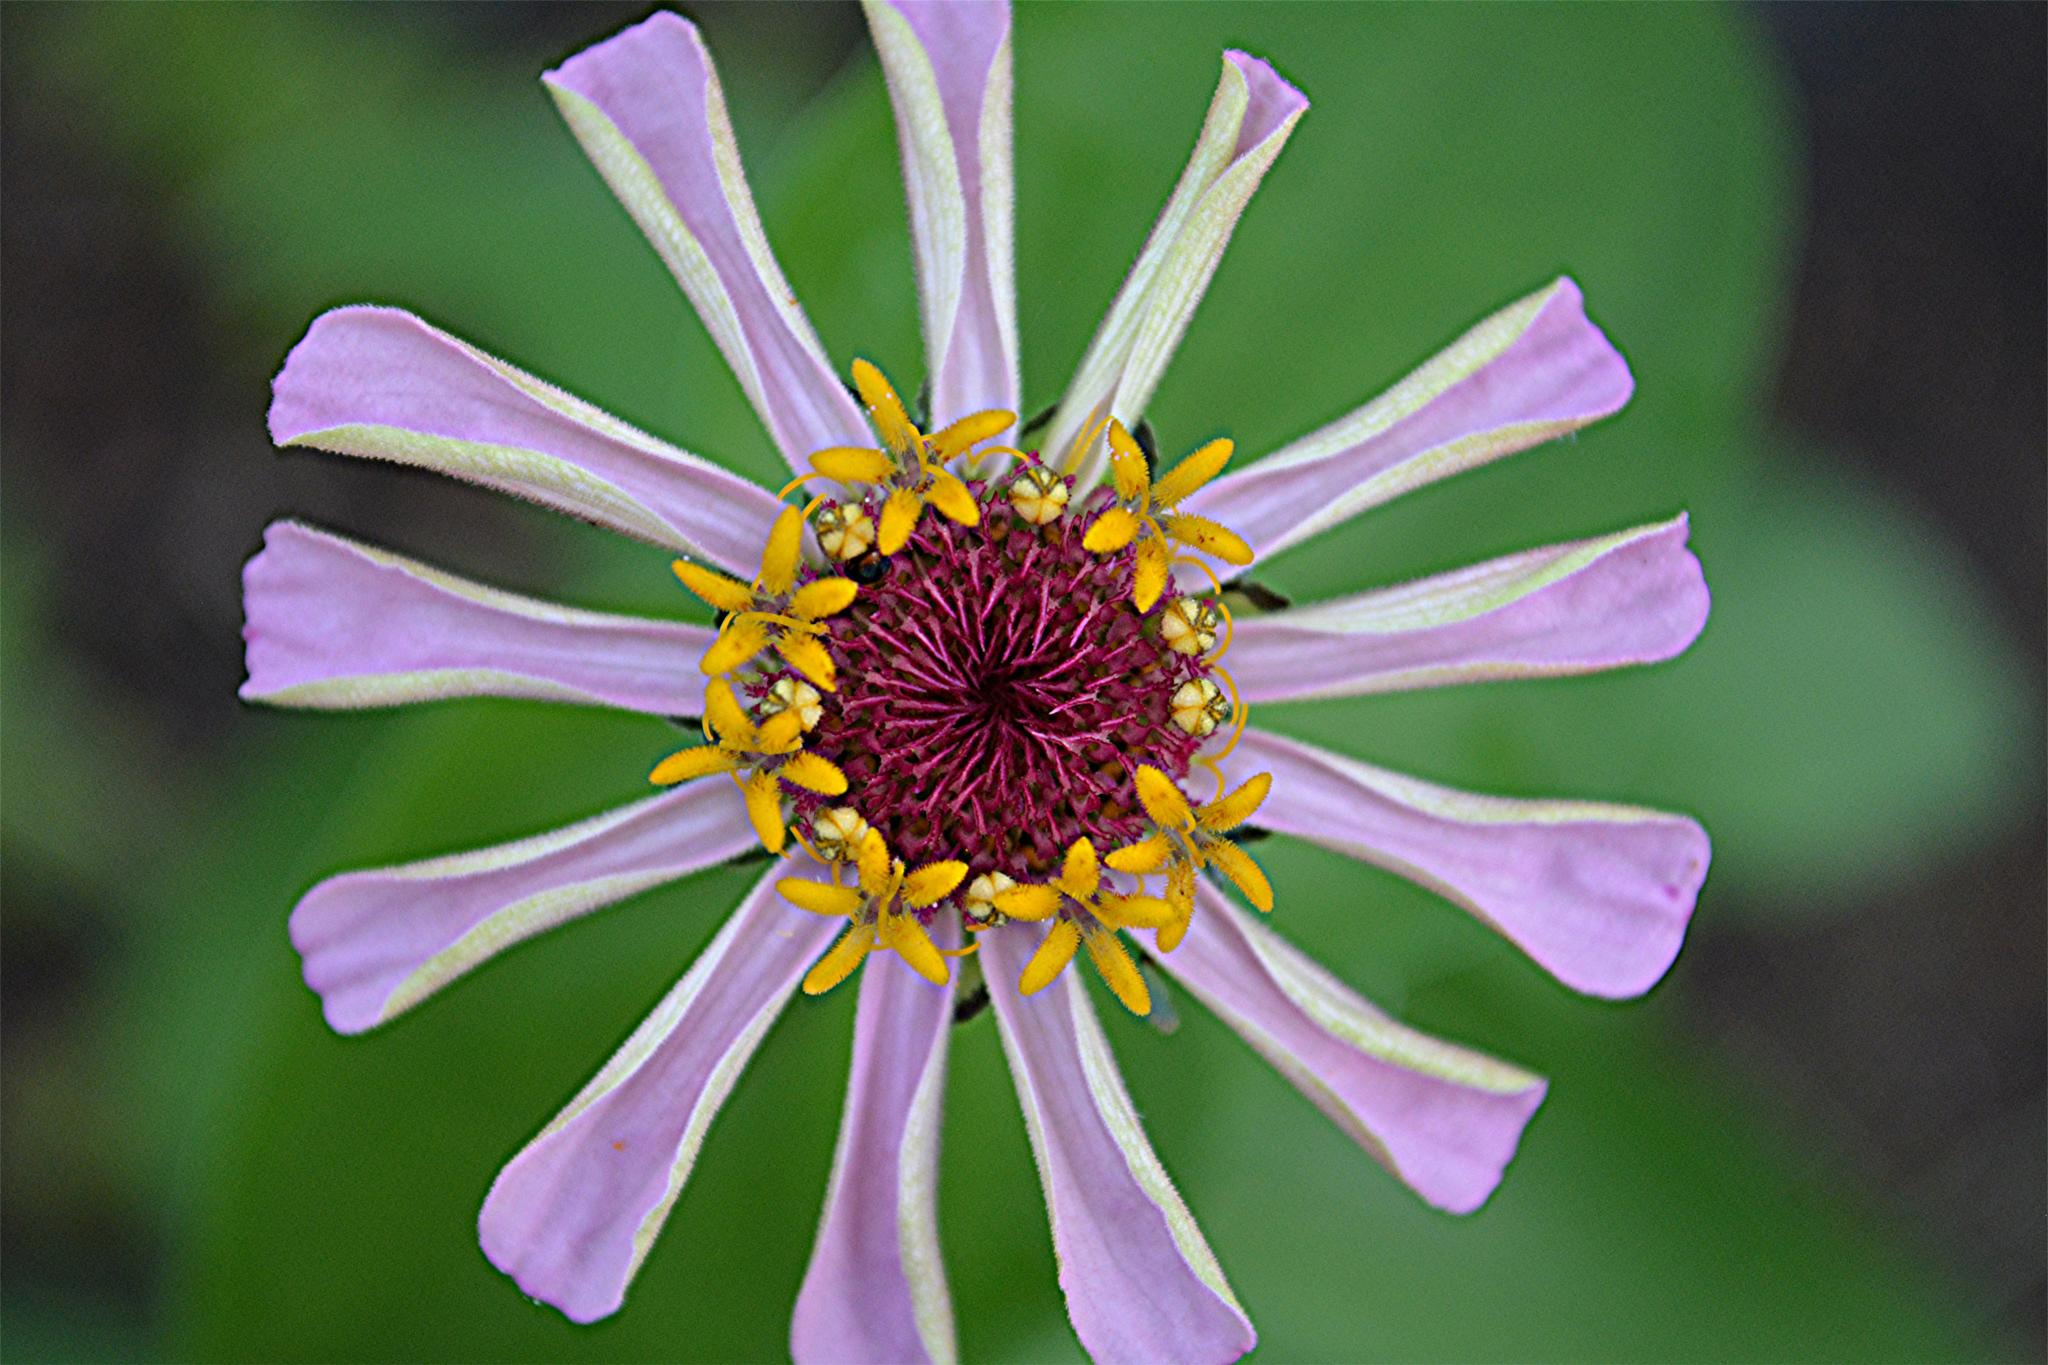 Zinnia in bloom by rayzicakes